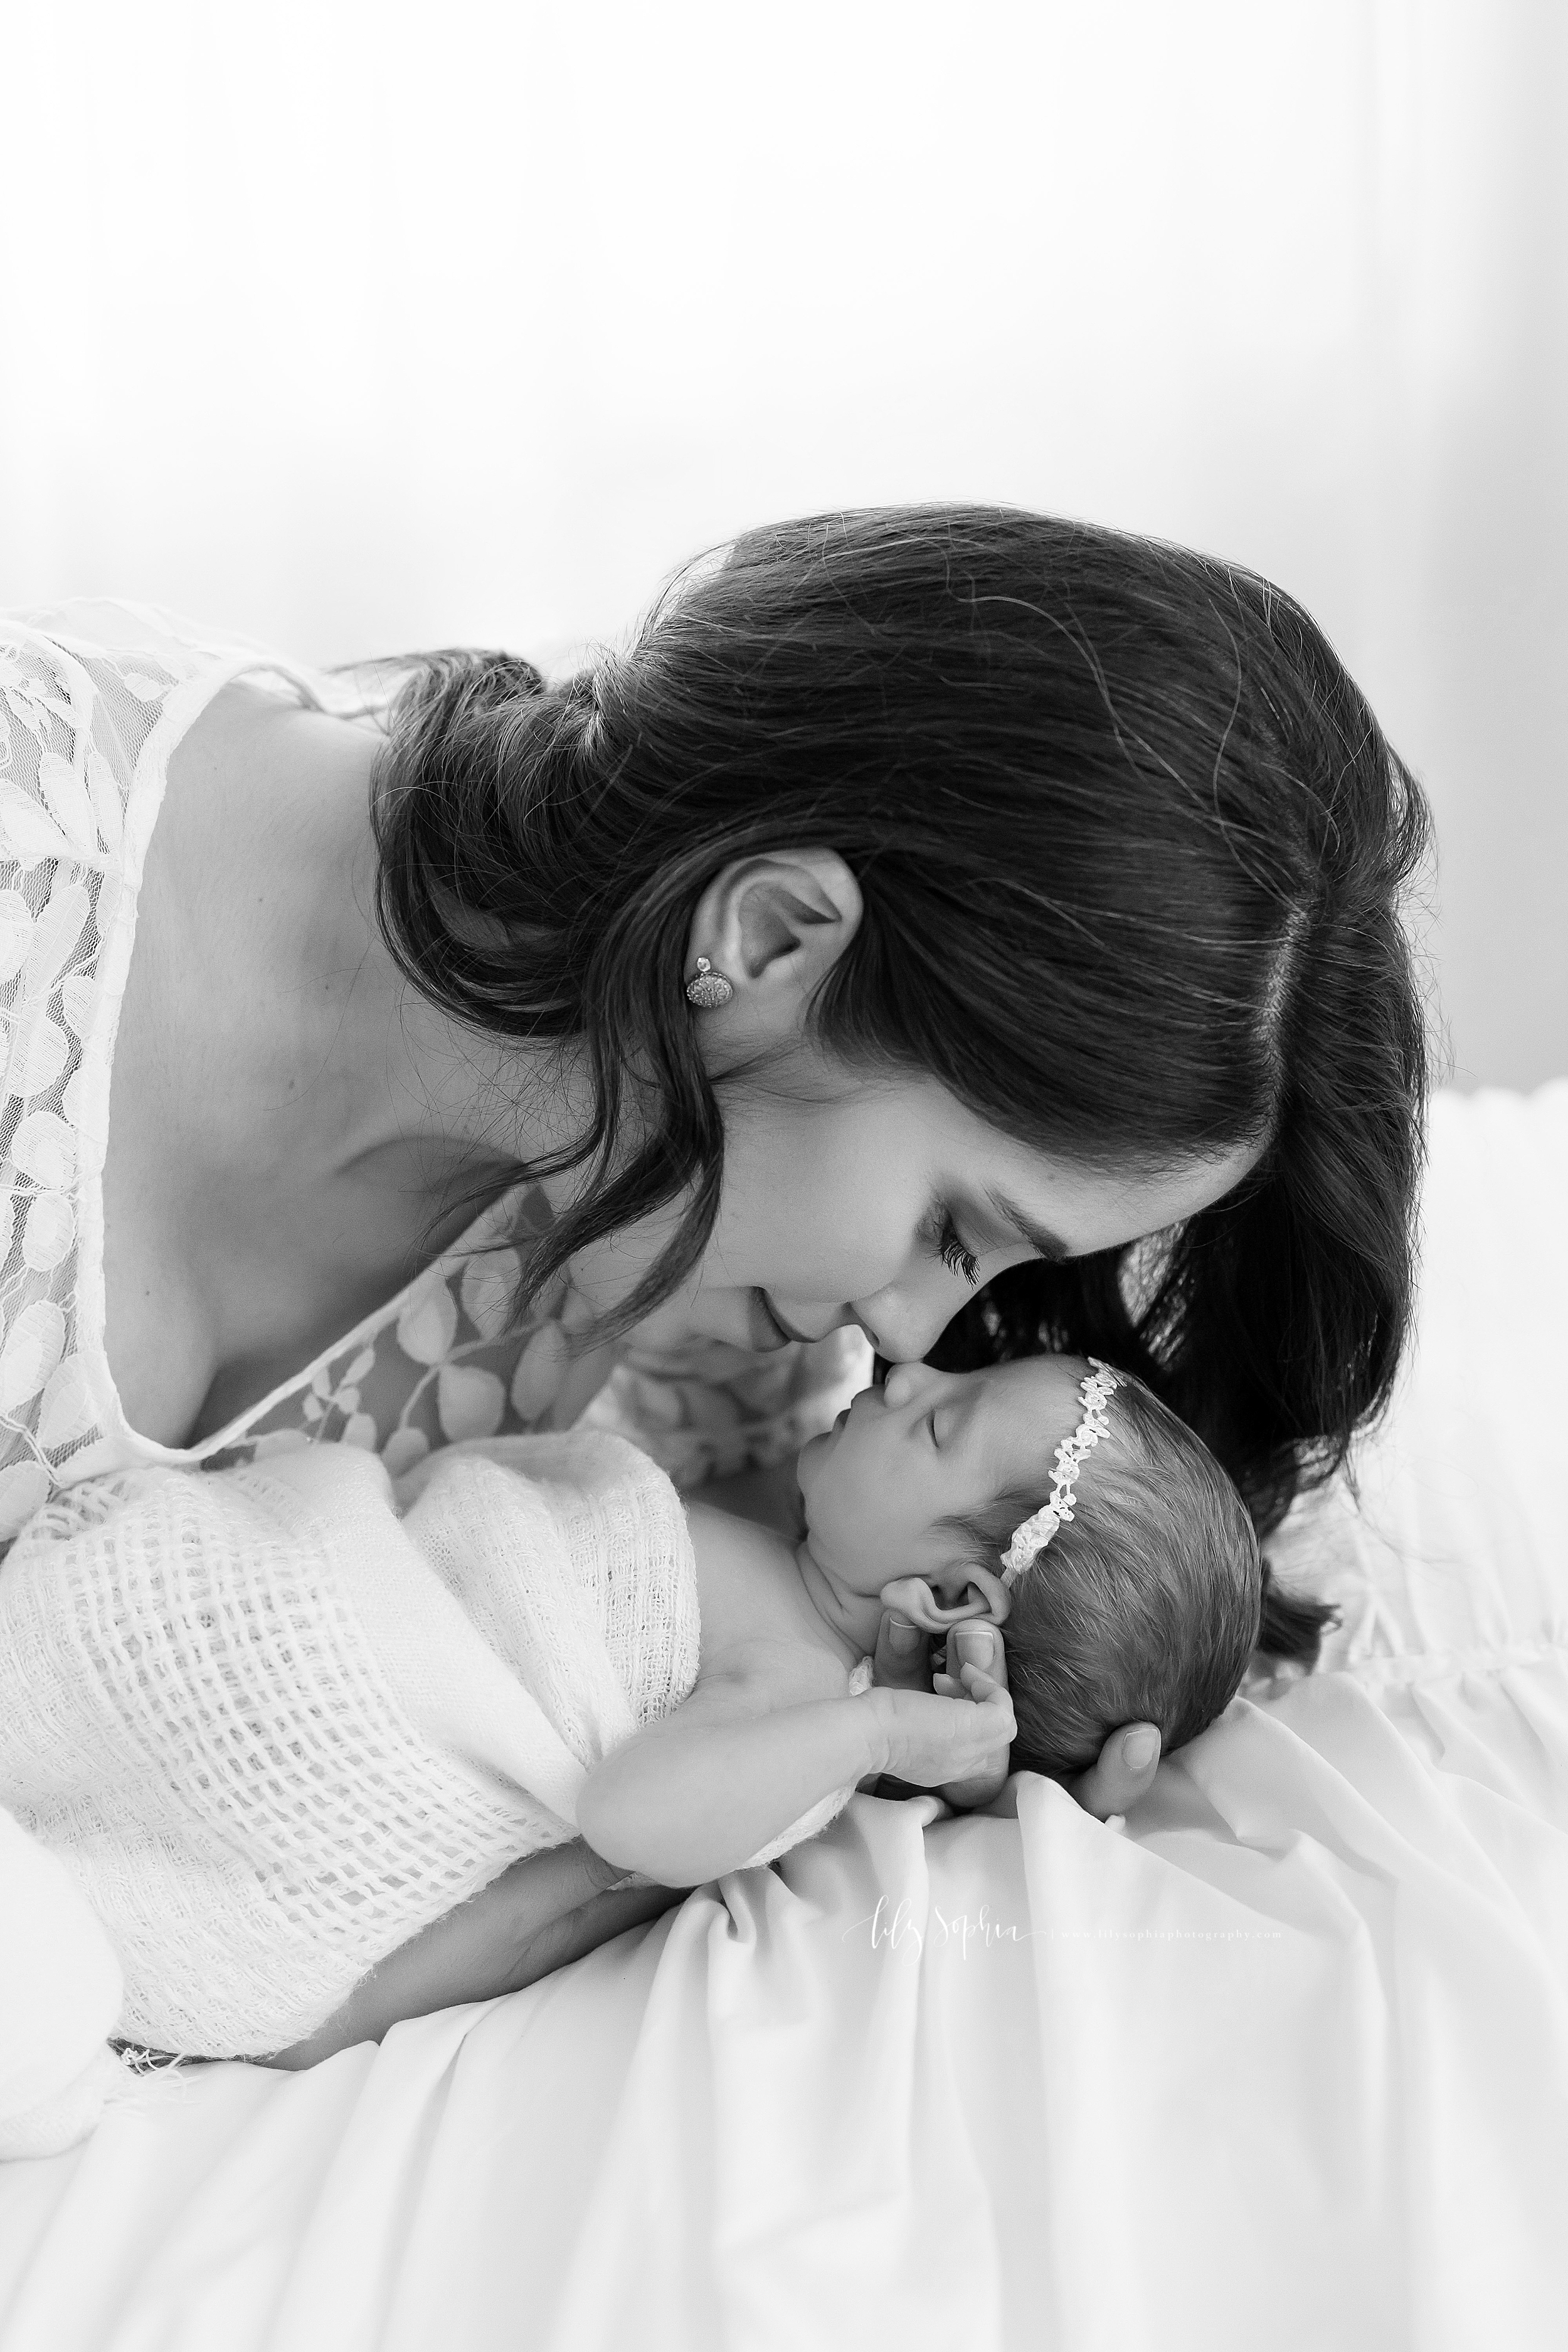 A black and white image of a mom and her newborn daughter nose to nose lying on a bed.  The brunette mom is wearing a shear lace bodiced scooped-necked dress.  Her daughter is wearing a lace headband and is loosely wrapped in a swaddle blanket.  The daughter is sleeping as mom cradles her head in her left hand.